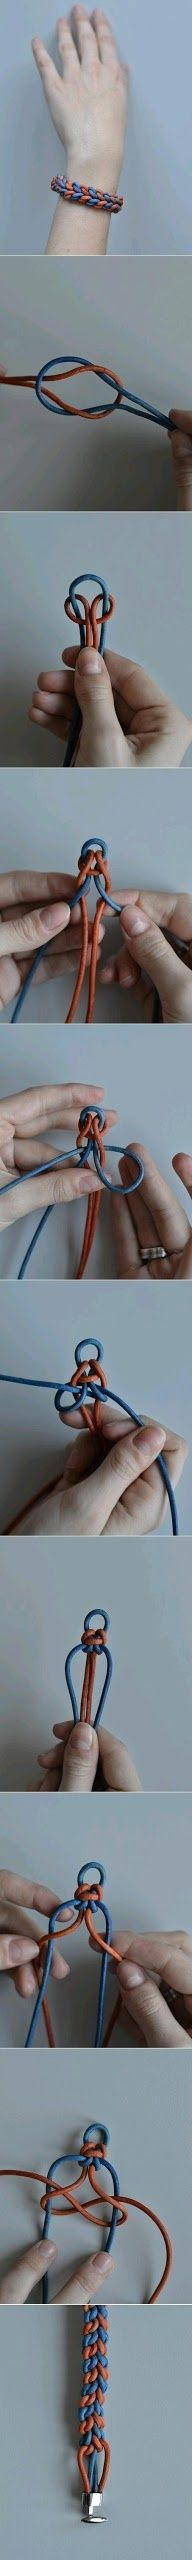 #bracelet #diy #stepbystep #tutorial